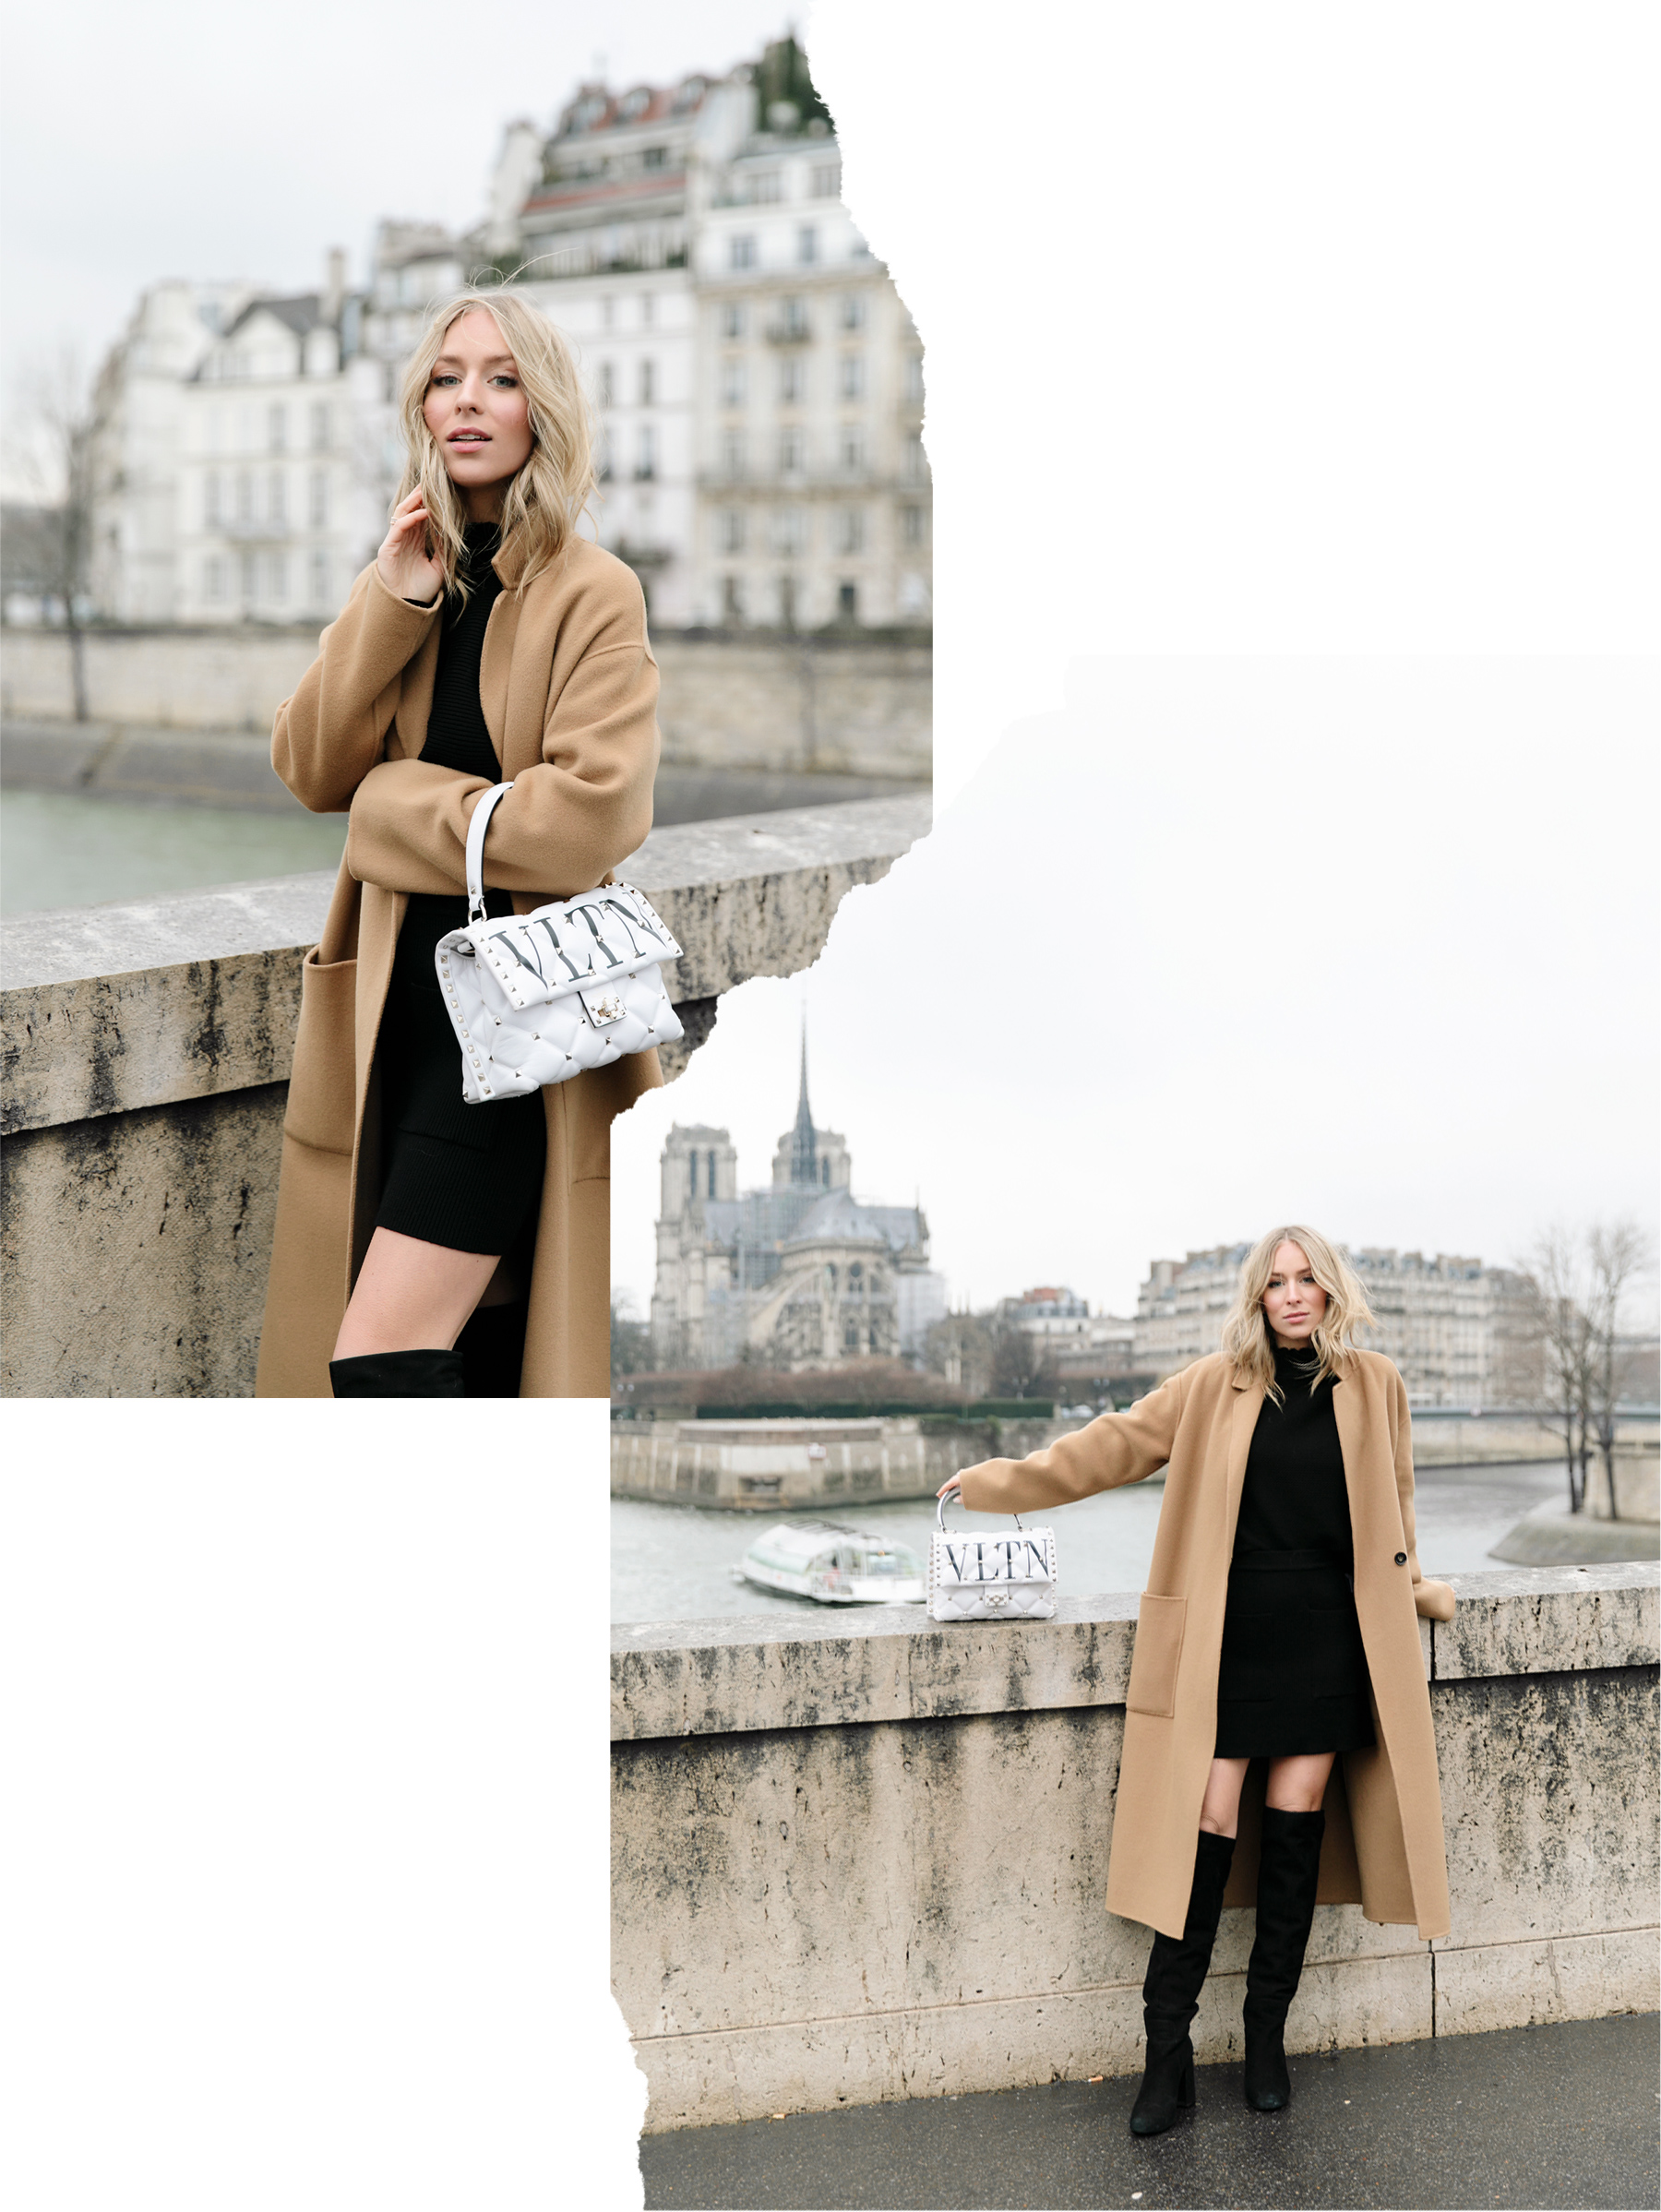 Carin_Olsson_Paris.jpg